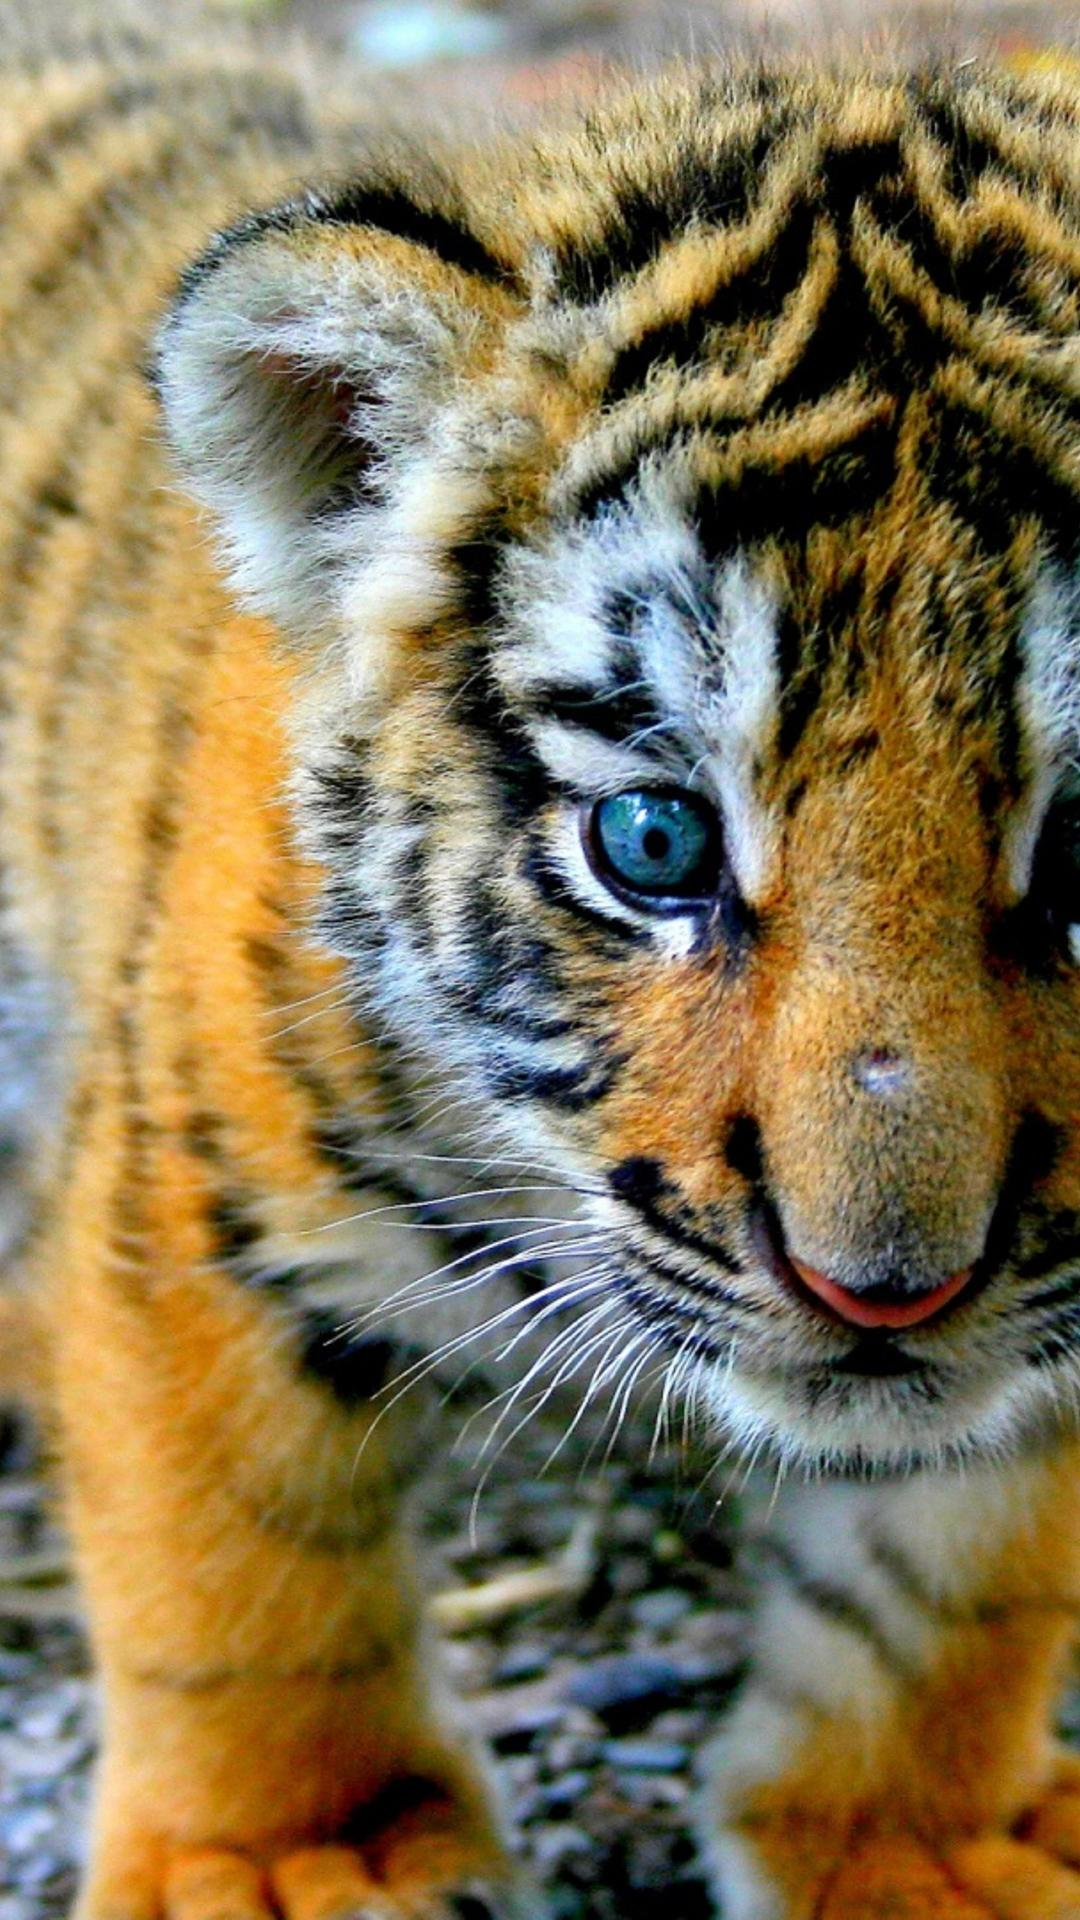 a sweet tiger cub - wild animal wallpaper wallpaper download 1080x1920